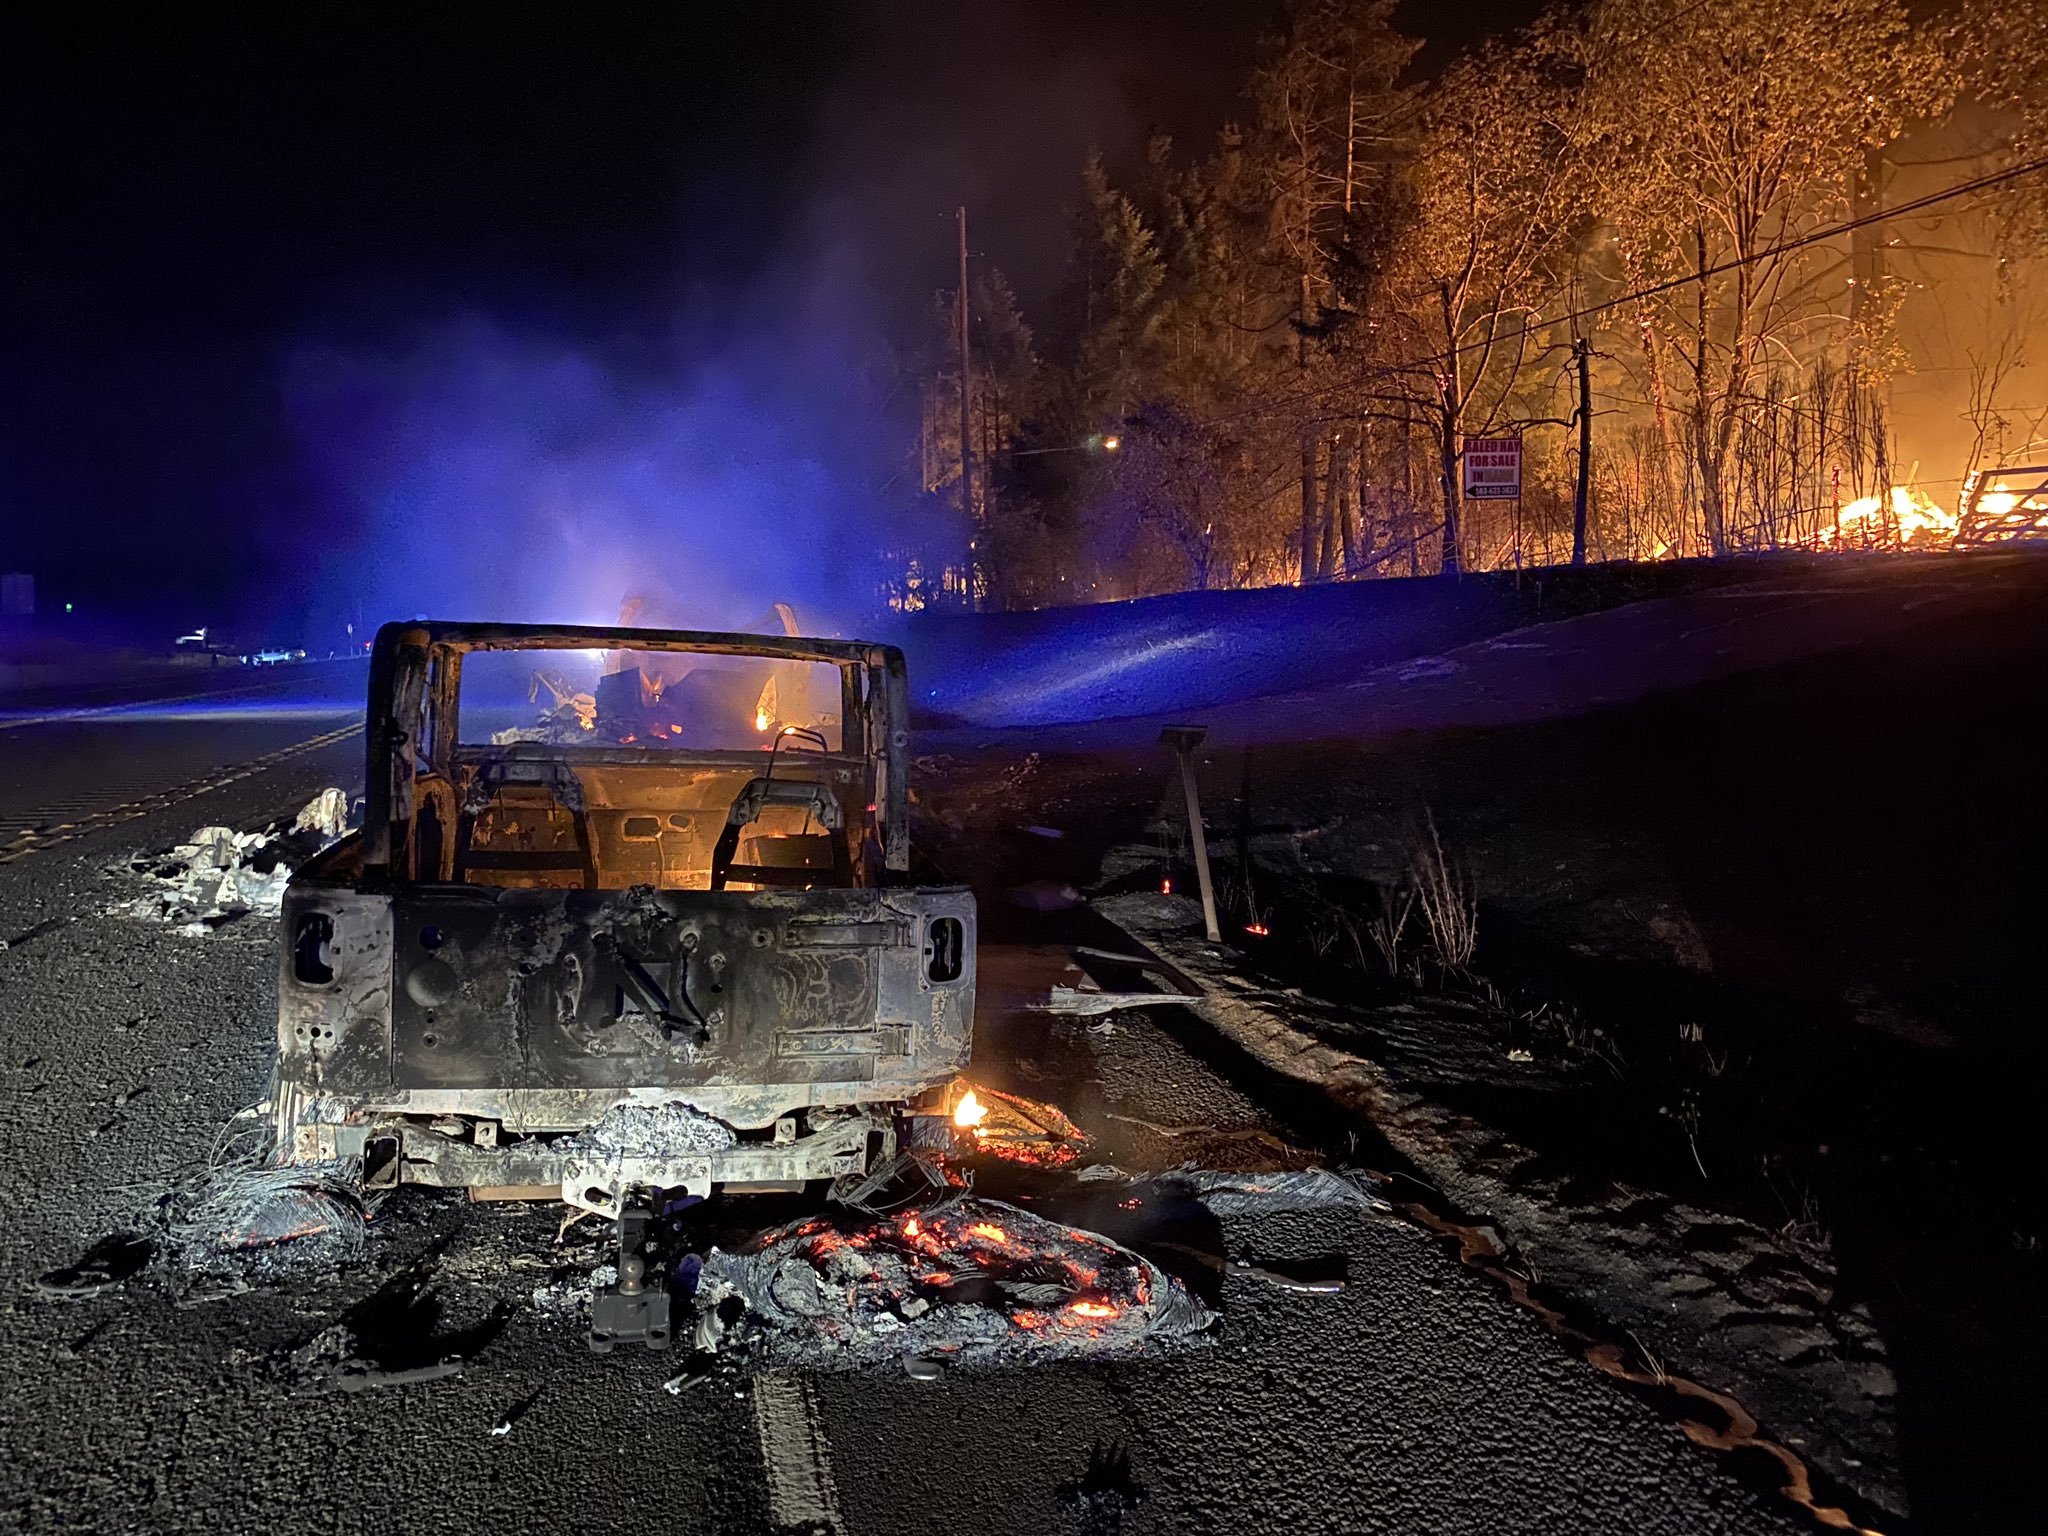 The Clackamas County Sheriff's Office tweeted this photo of a burned out vehicle burned near Carus and Union Hall Road on Tuesday, Sept. 8, 2020. (Clackamas County Sheriff's Office)